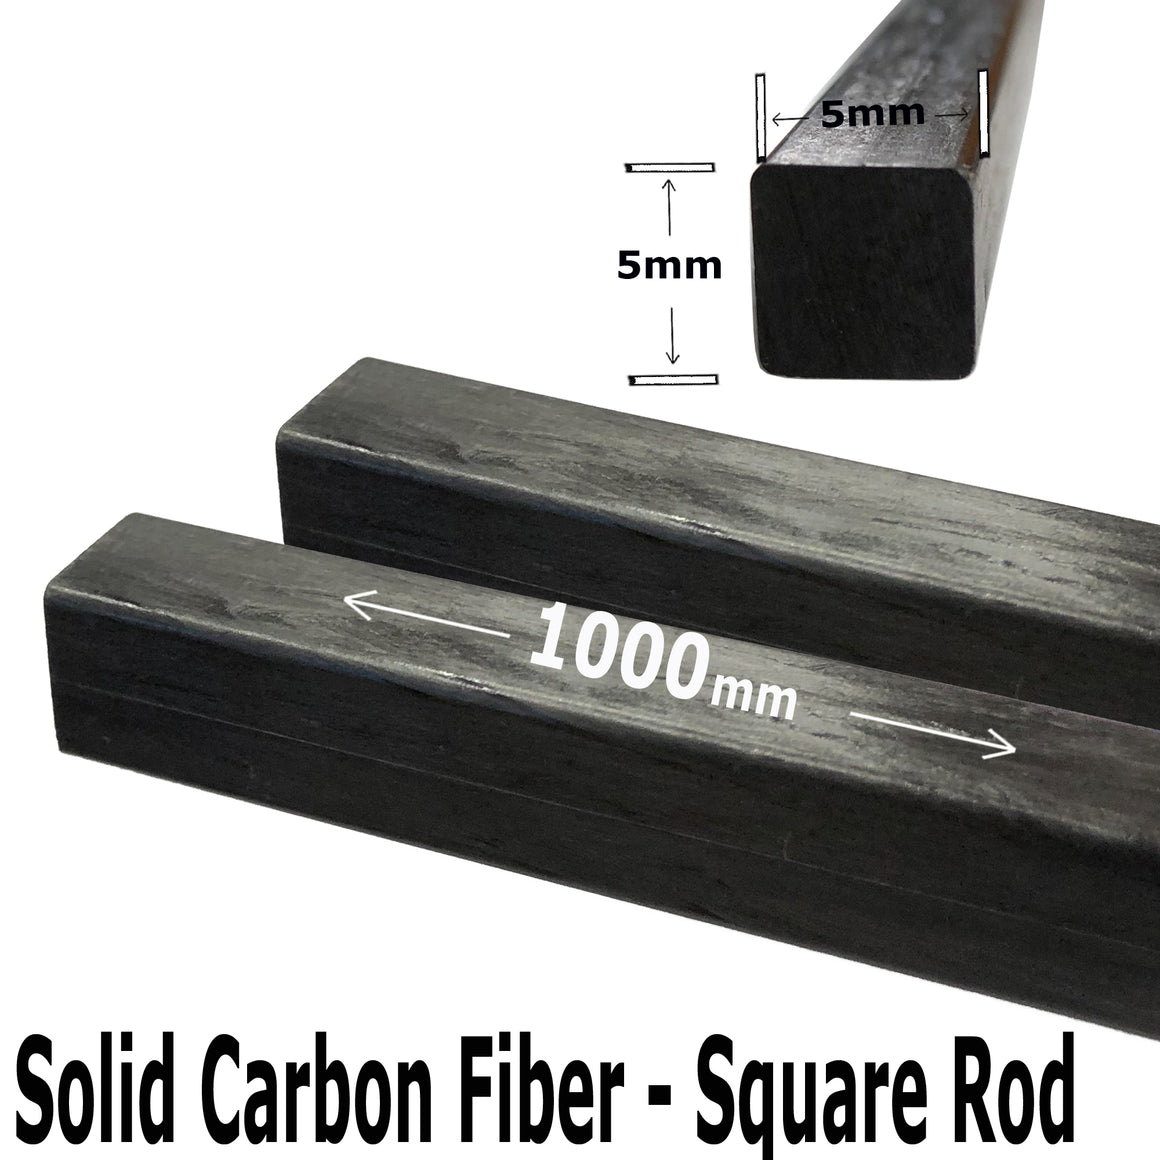 Pultruded Carbon Fiber Square Rods - 5mm x 5mm x 1000mm - High Strength Solid Rods